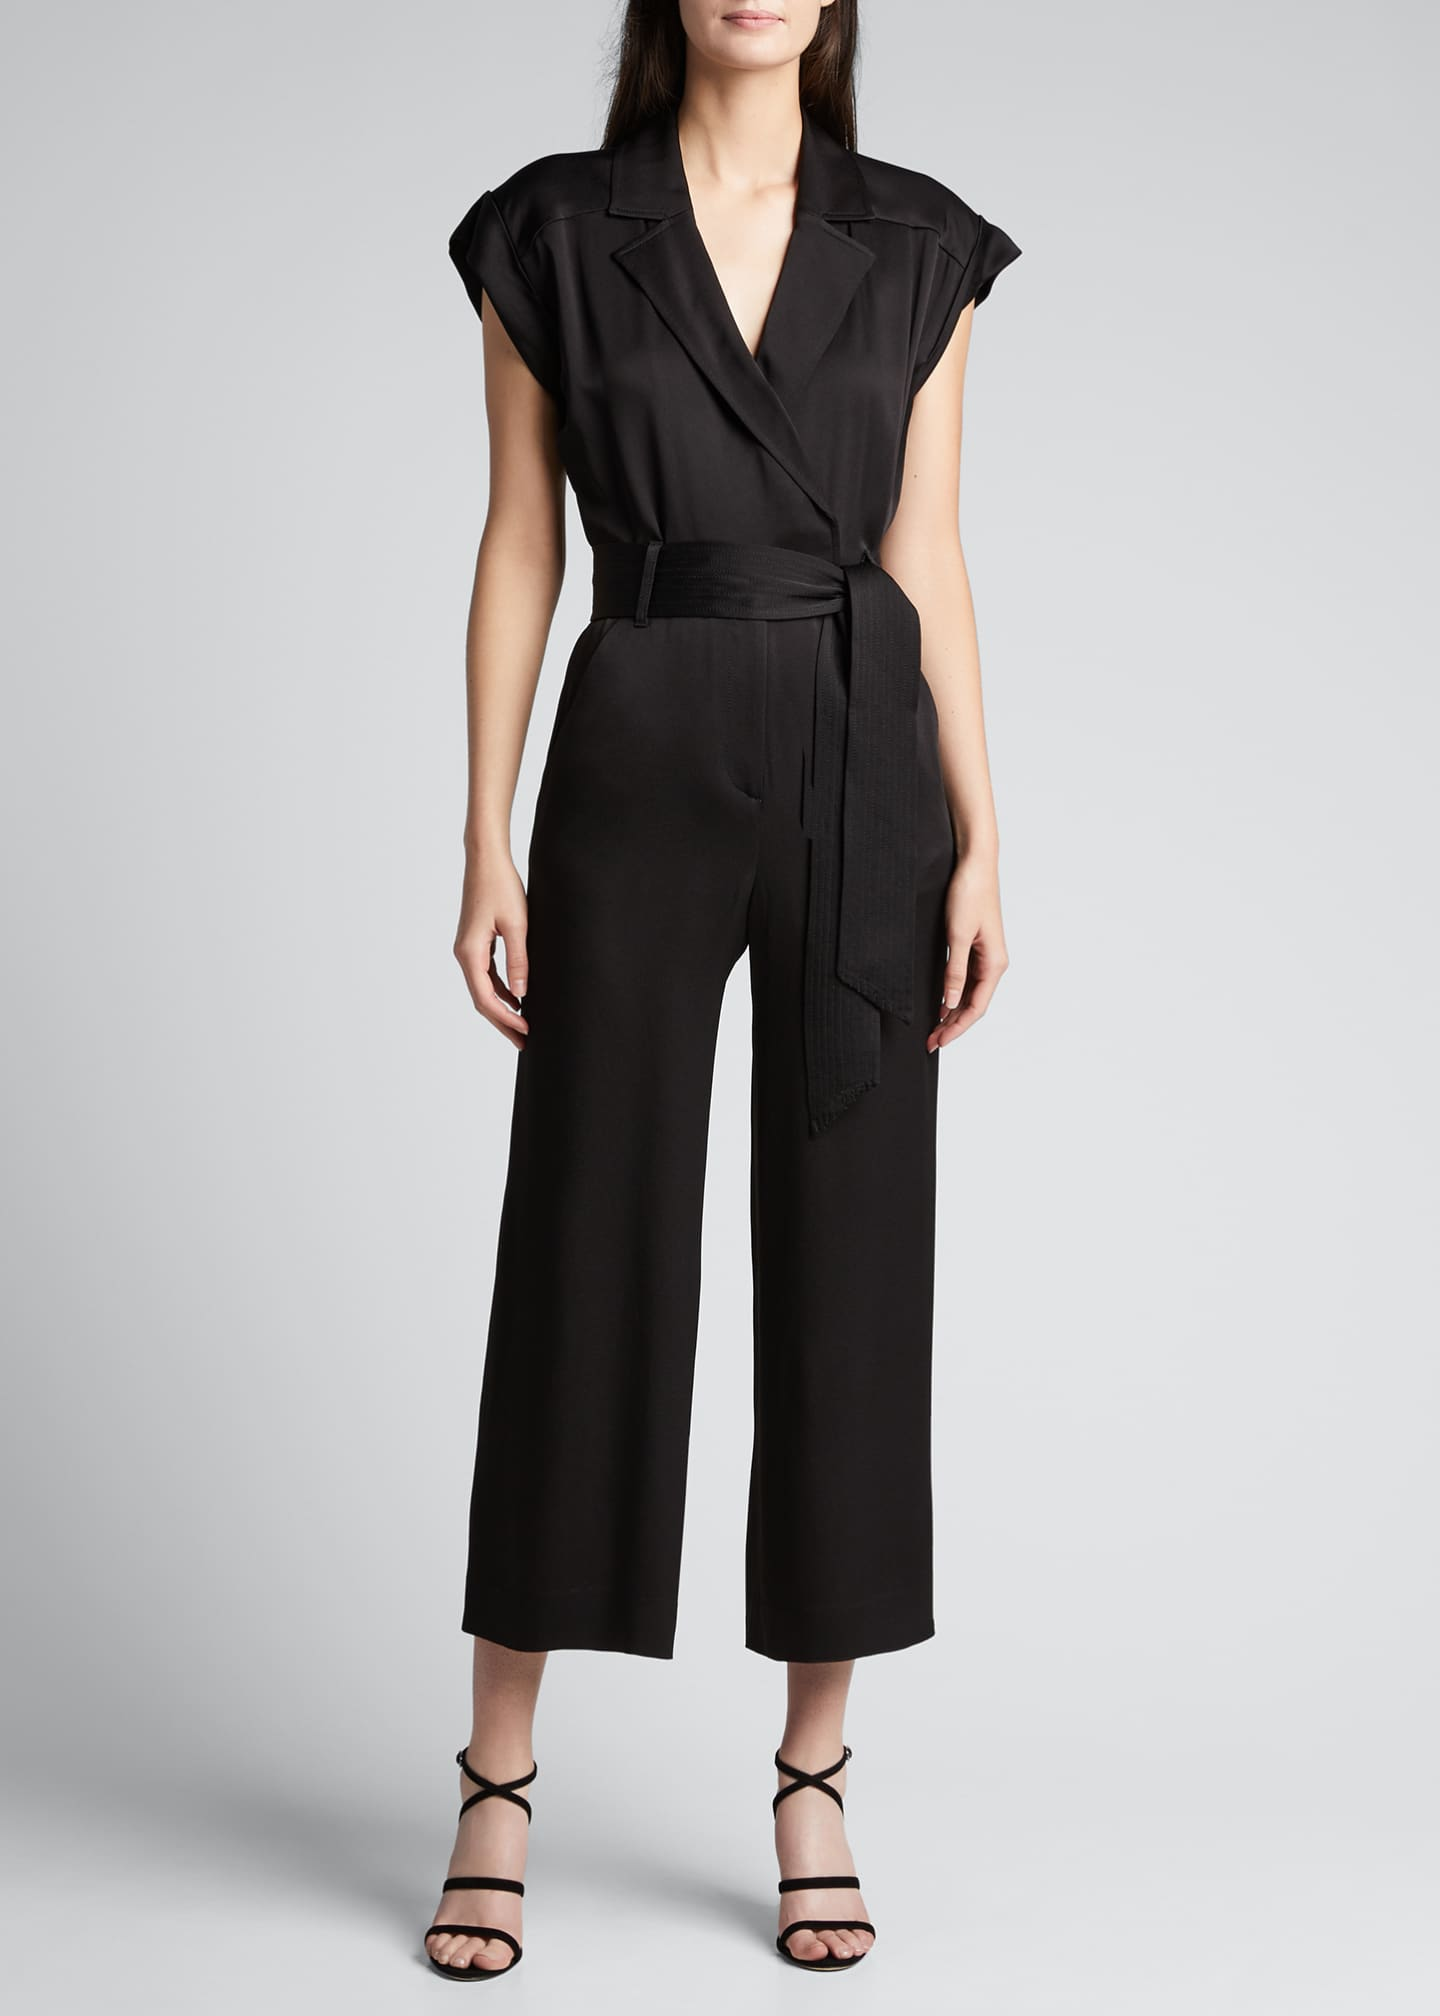 Image 1 of 5: Ophelia Collared Jumpsuit